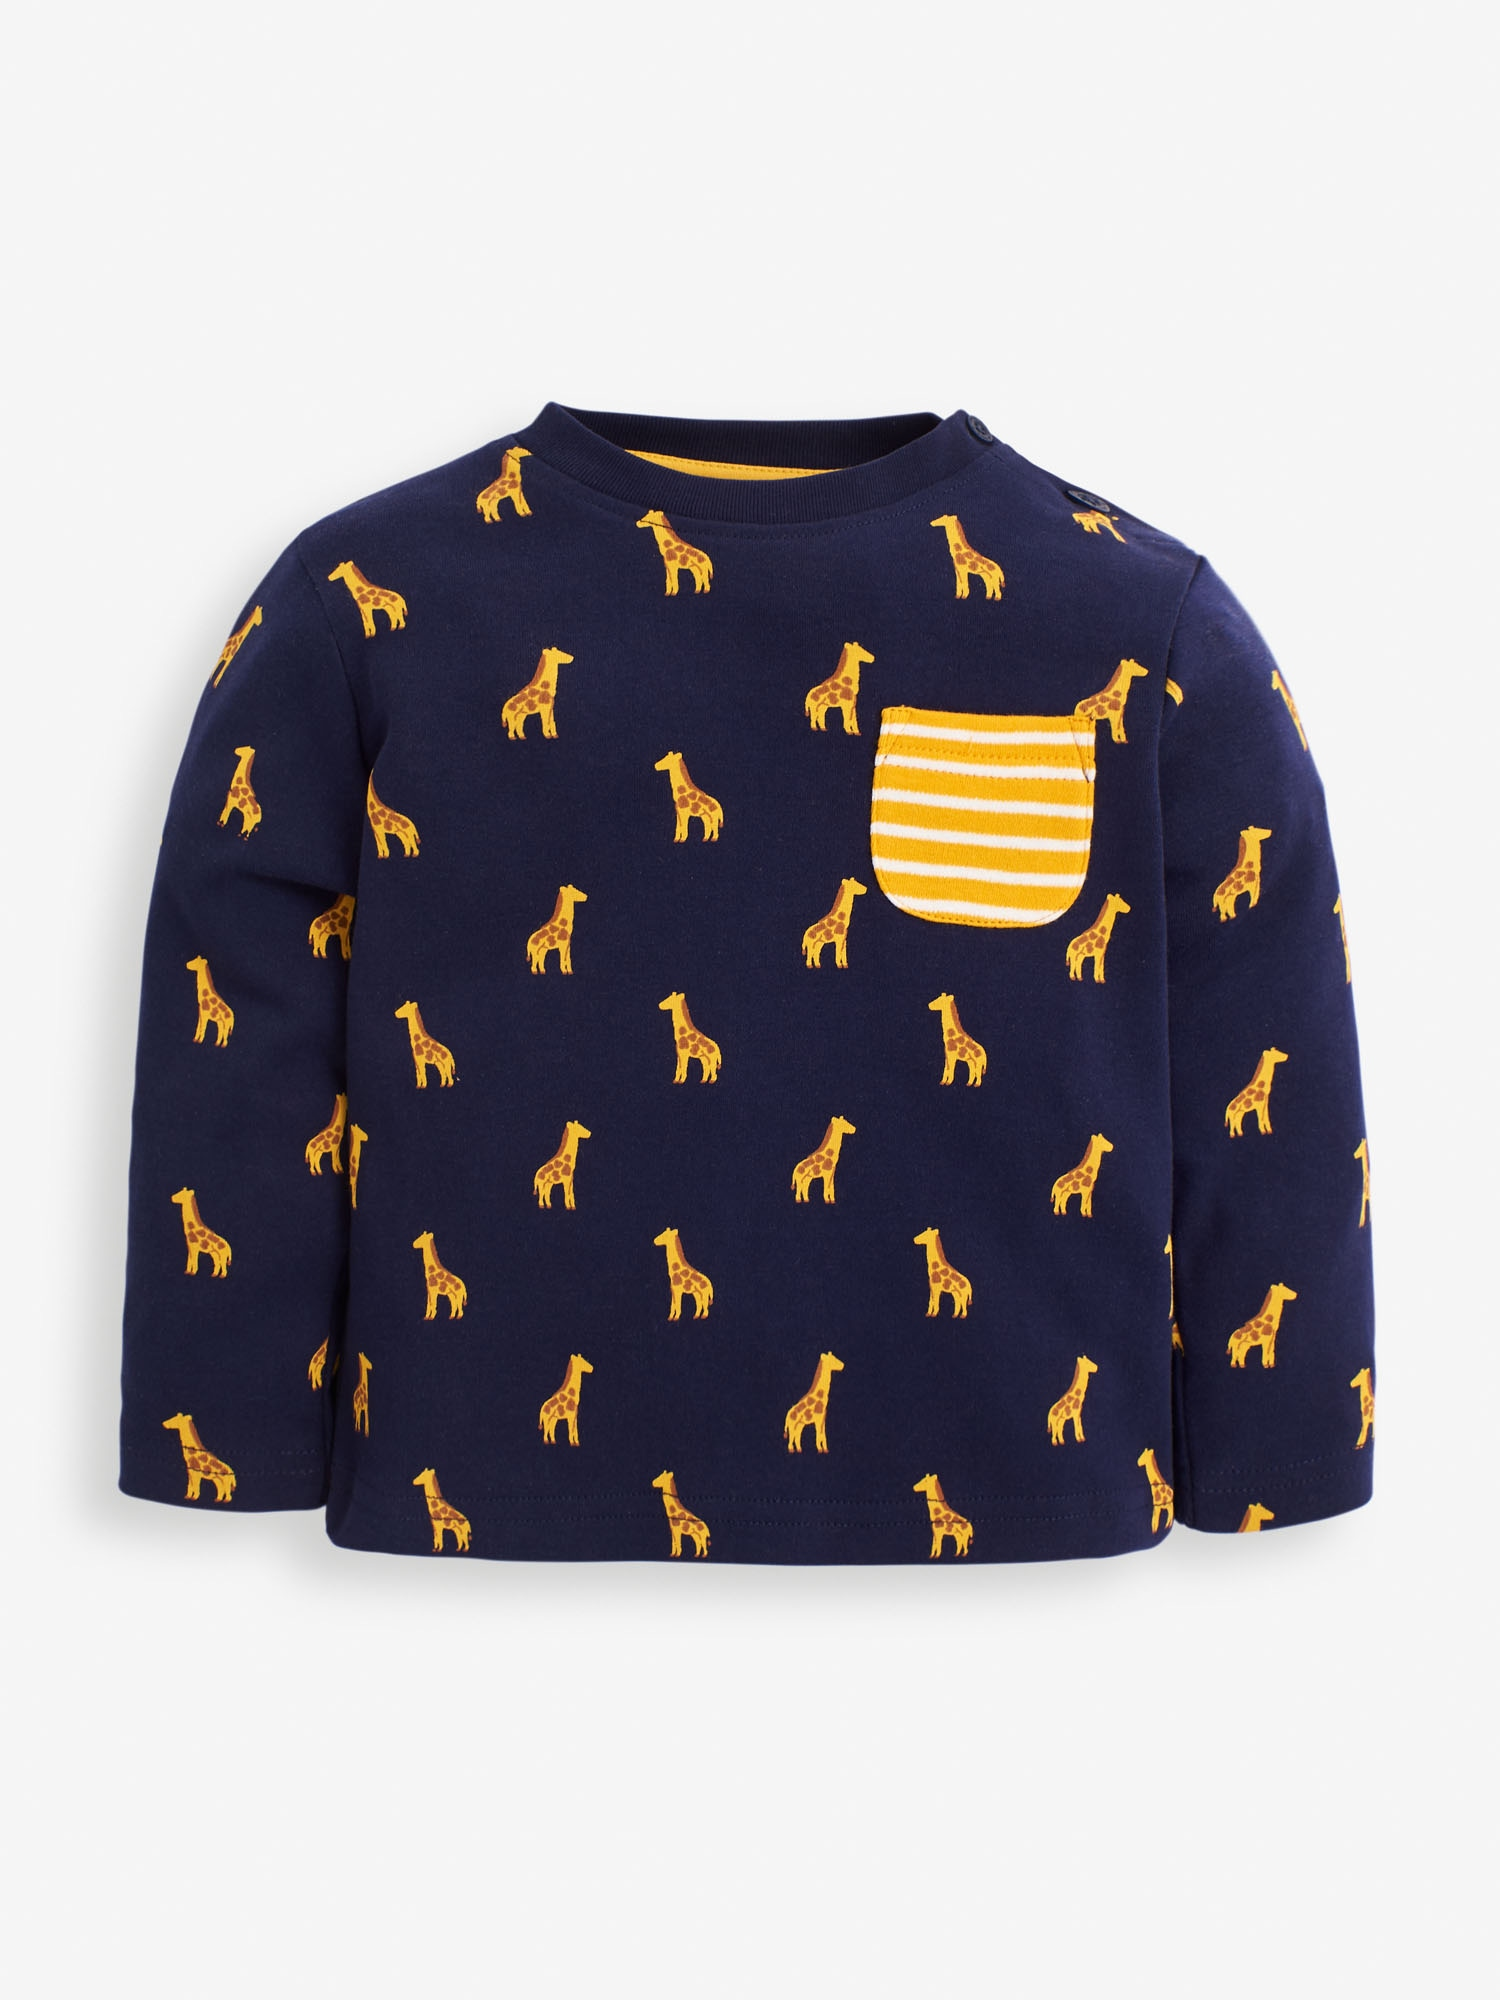 Kids' Navy Giraffe Print Top